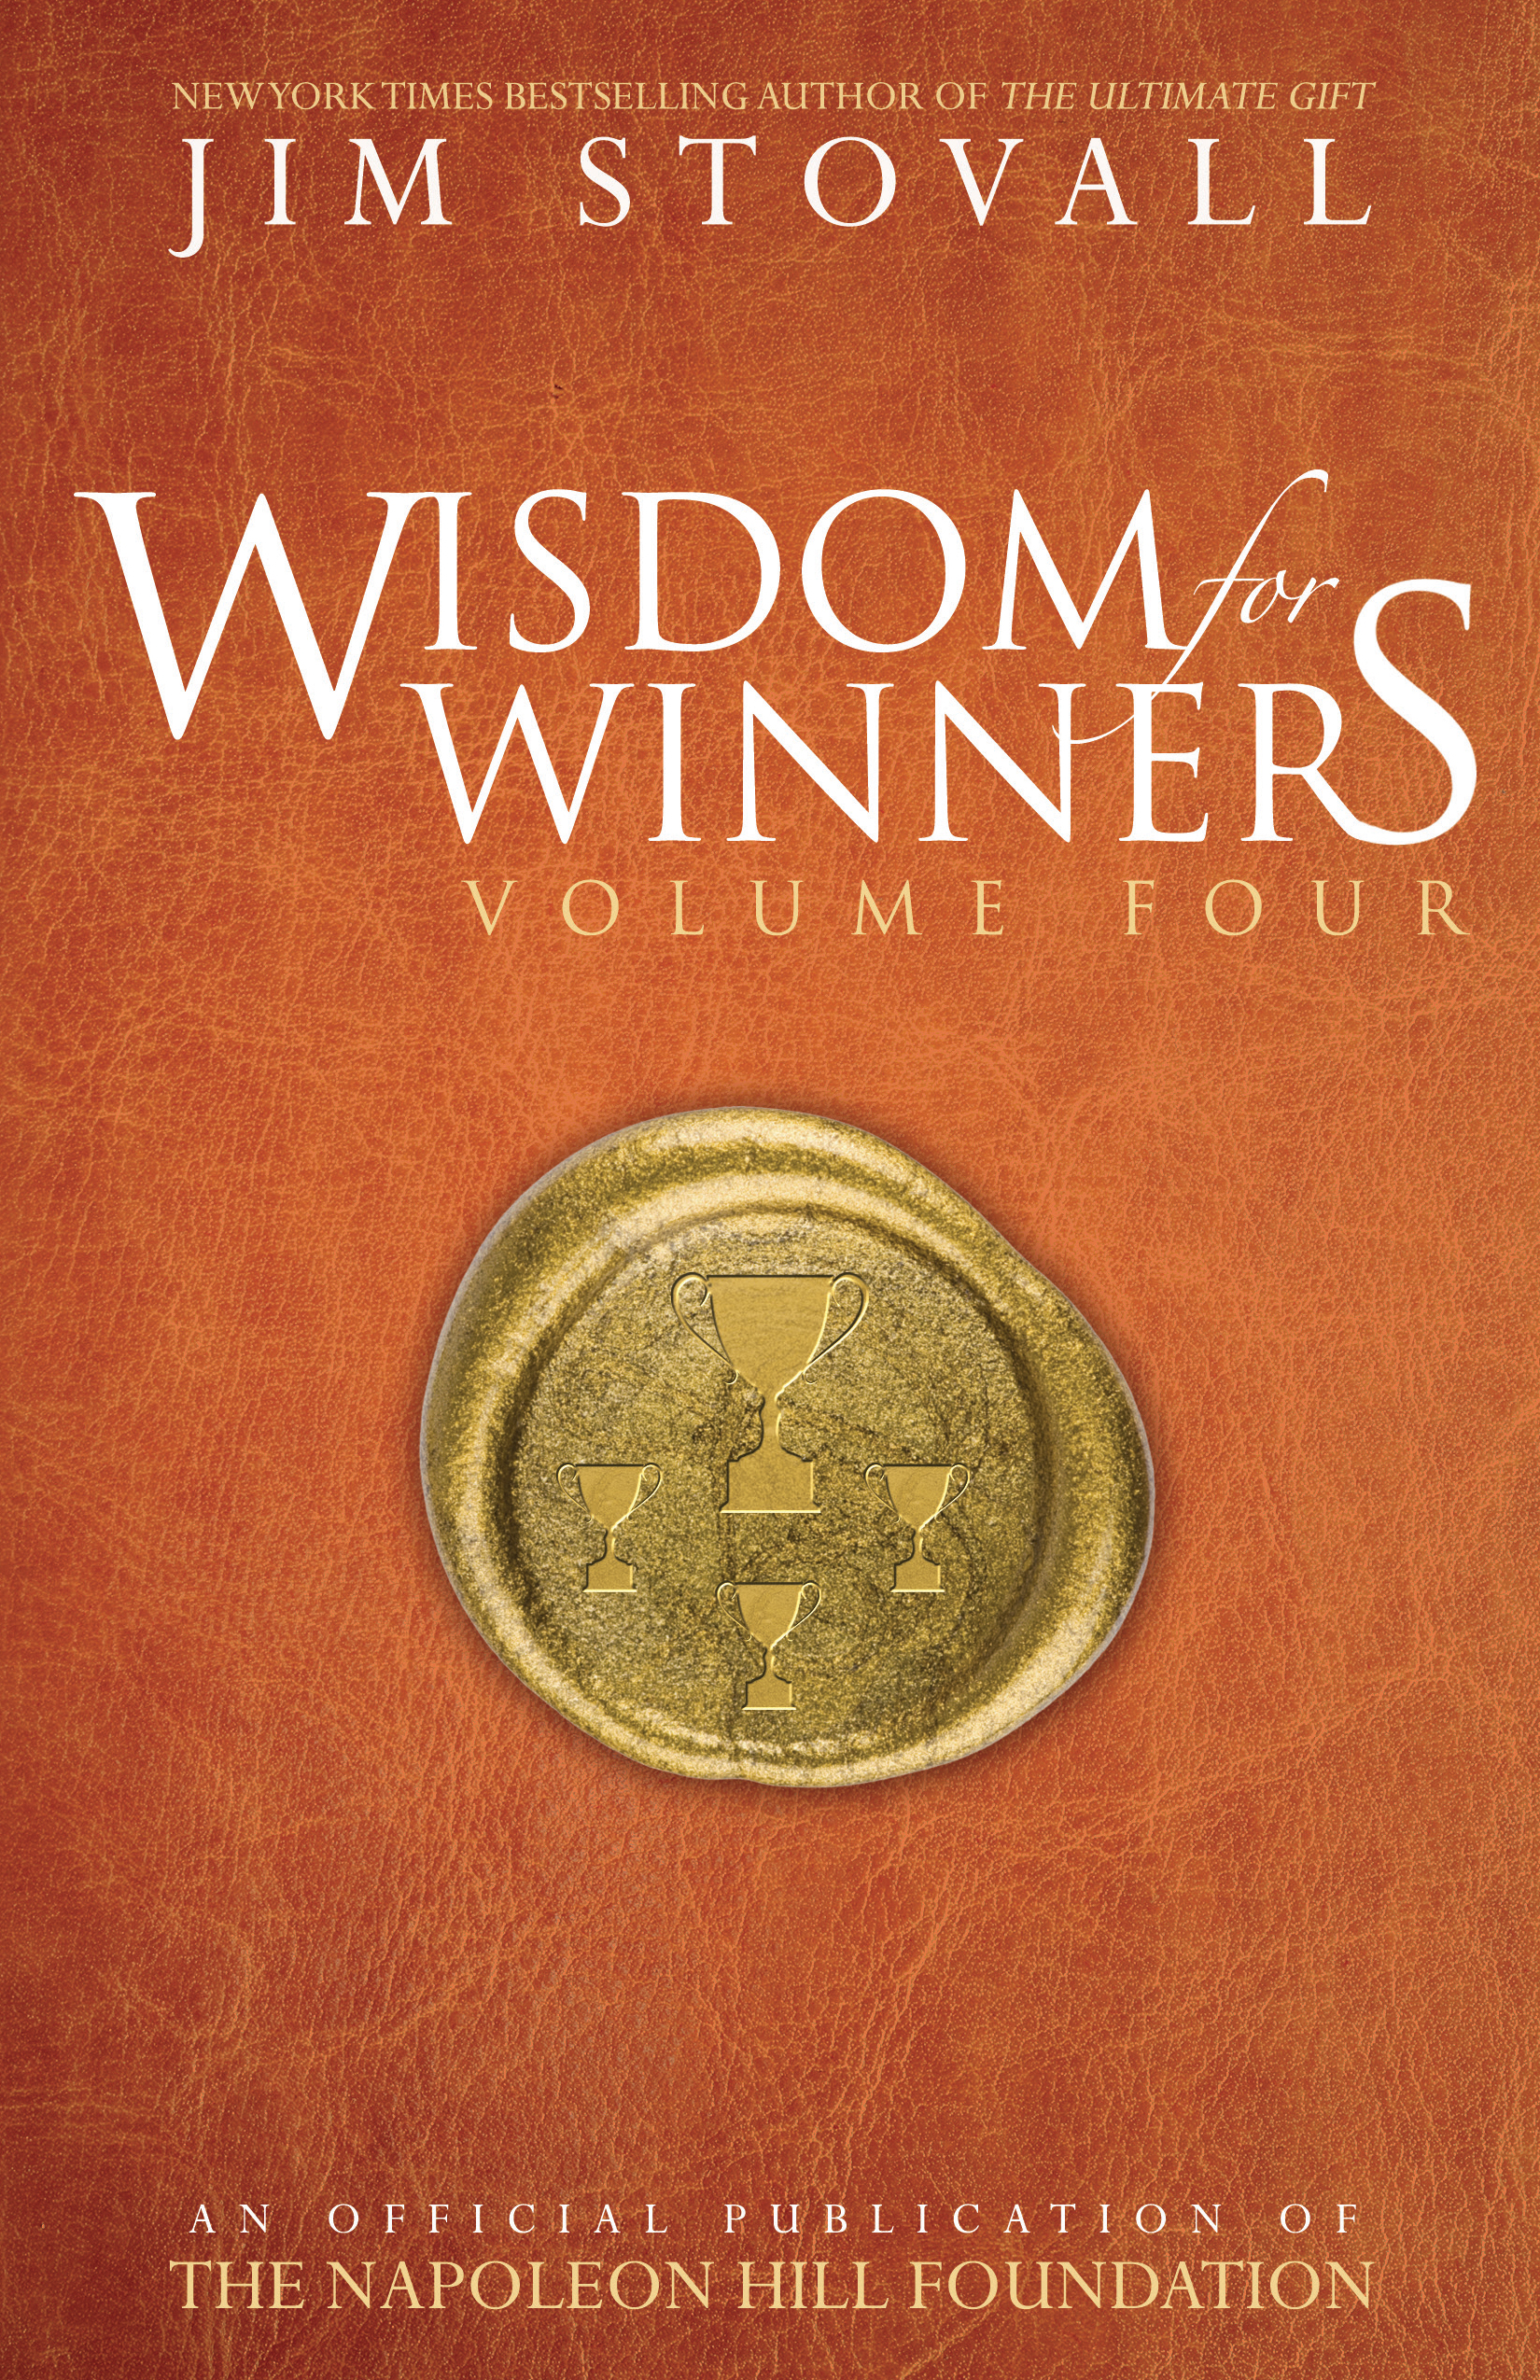 Wisdom for Winners Volume Four - Jim Stovall